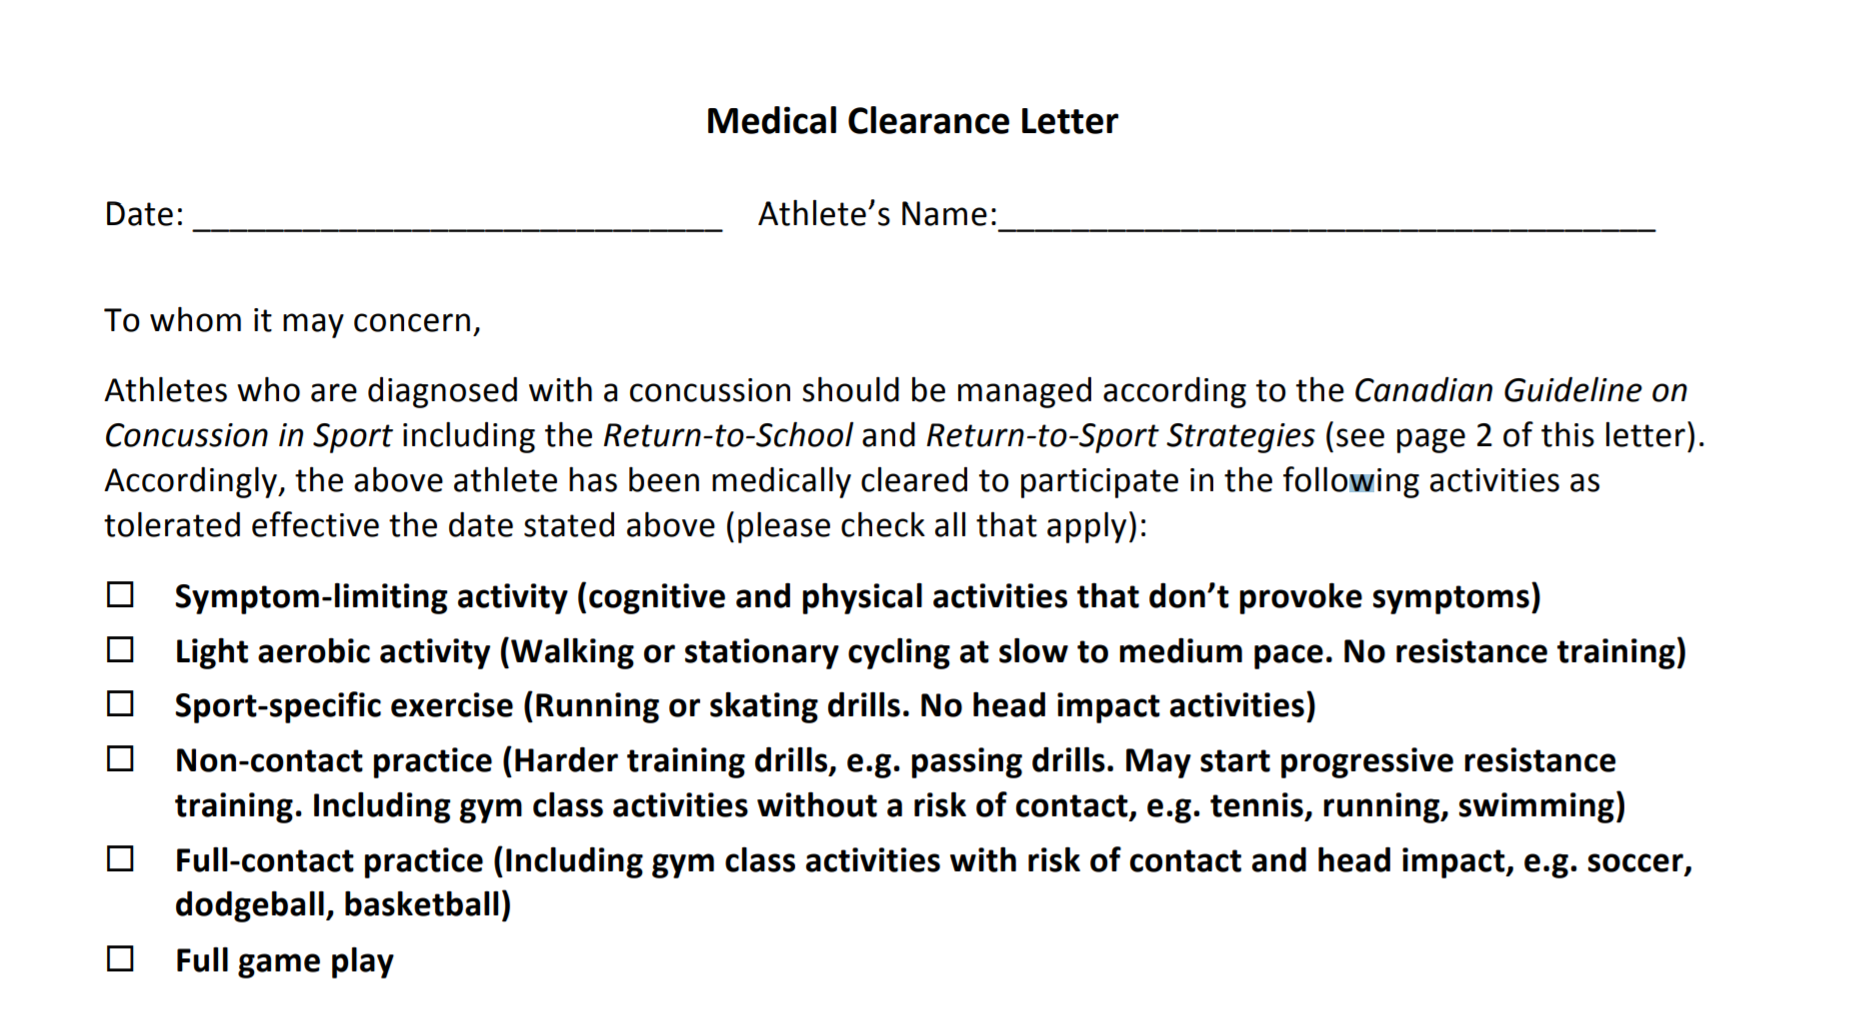 medical clearance letter.PNG